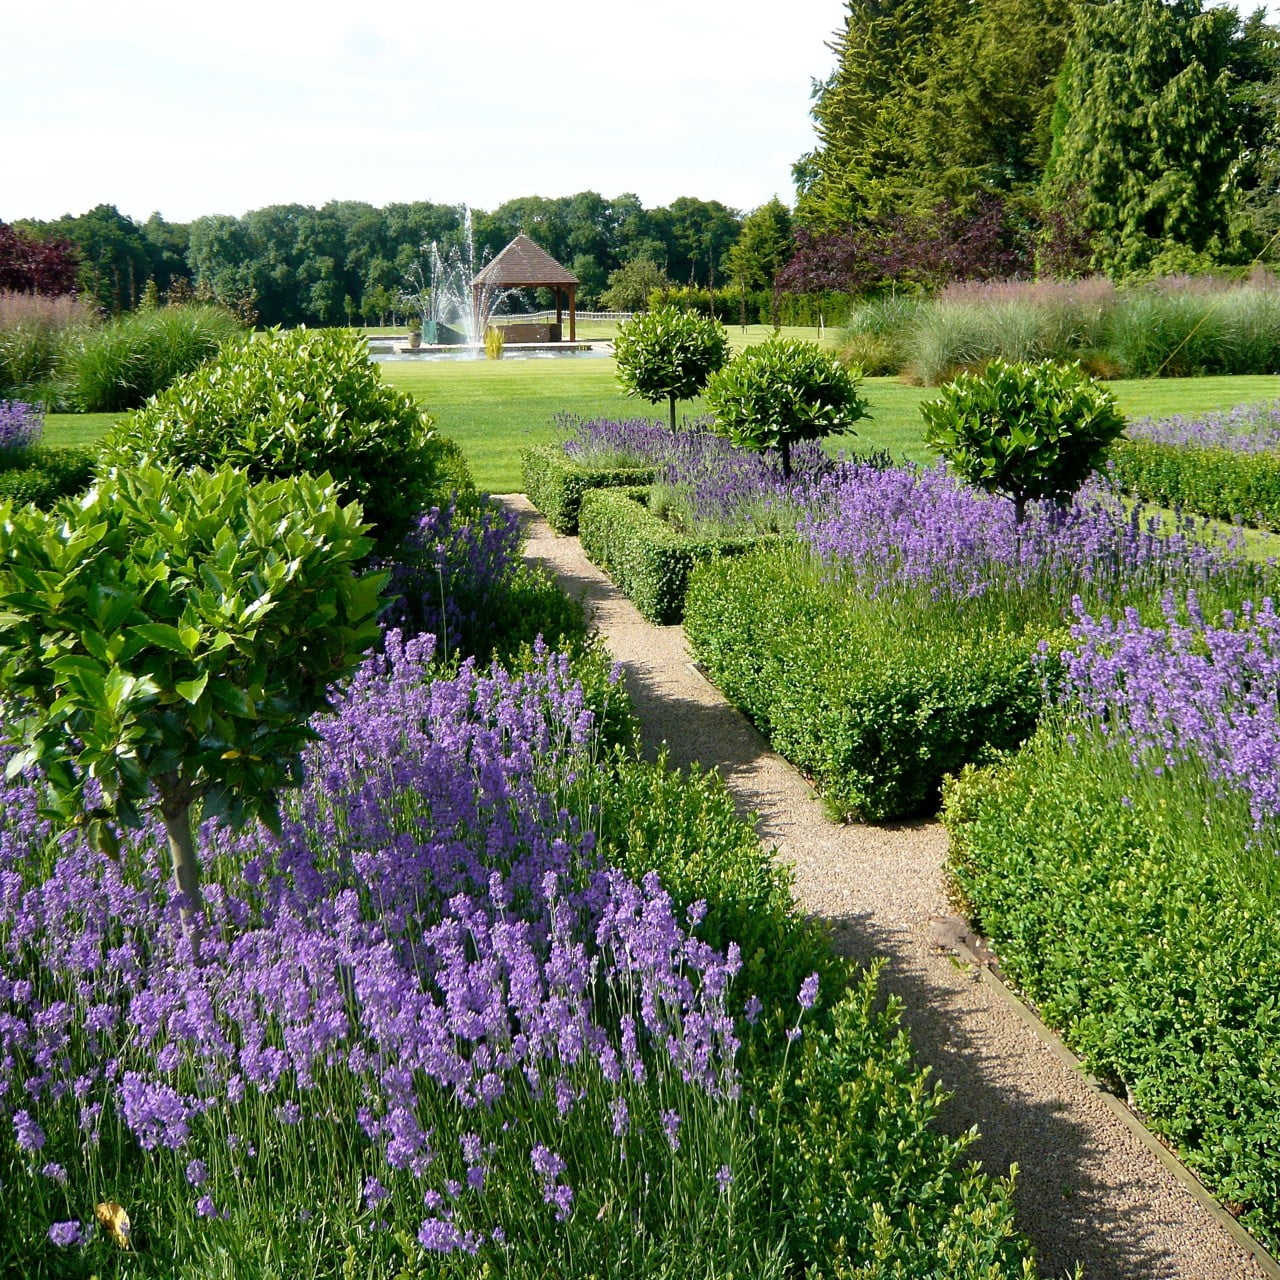 This is the lovely large parterre in a very large country garden near Henley On Thames I designed. It used to be a commercial nursery so it's quite a transformation!